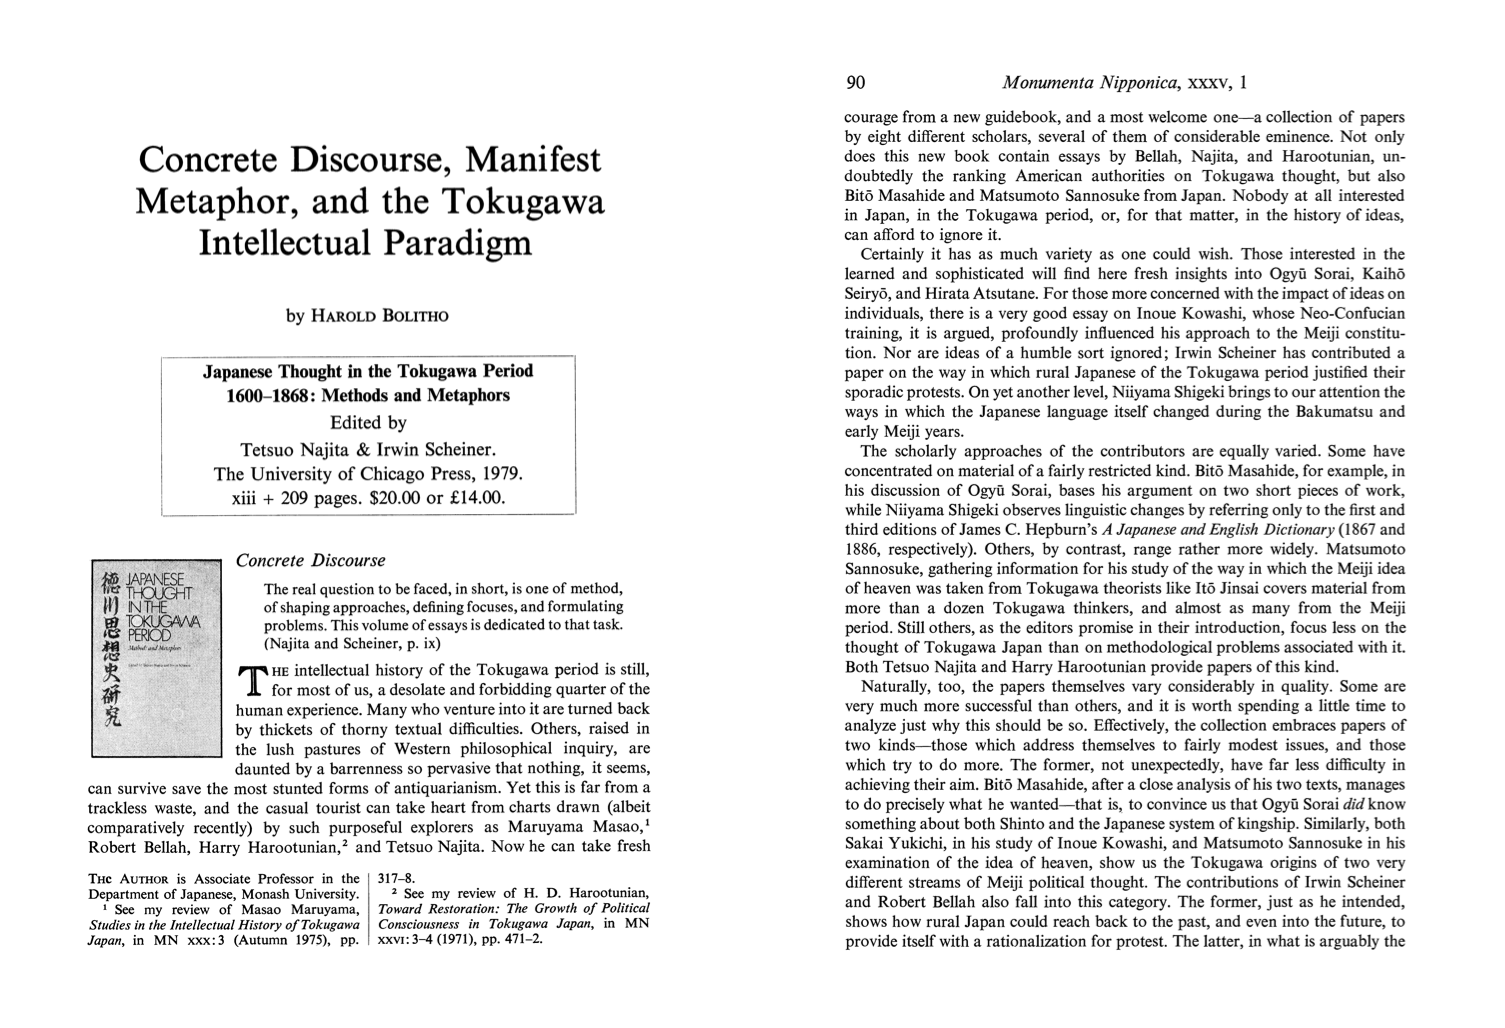 "confucian in japan essay The interest in confucian work dynamism and future orientation emanated from a rise in competitive dominance in the latter part of the 20th century of some east asian countries such as japan and the ""four dragons"" (or ""tigers"")—hong kong, singapore, south korea, and taiwan—as well as south asian countries such as malaysia, thailand, and."